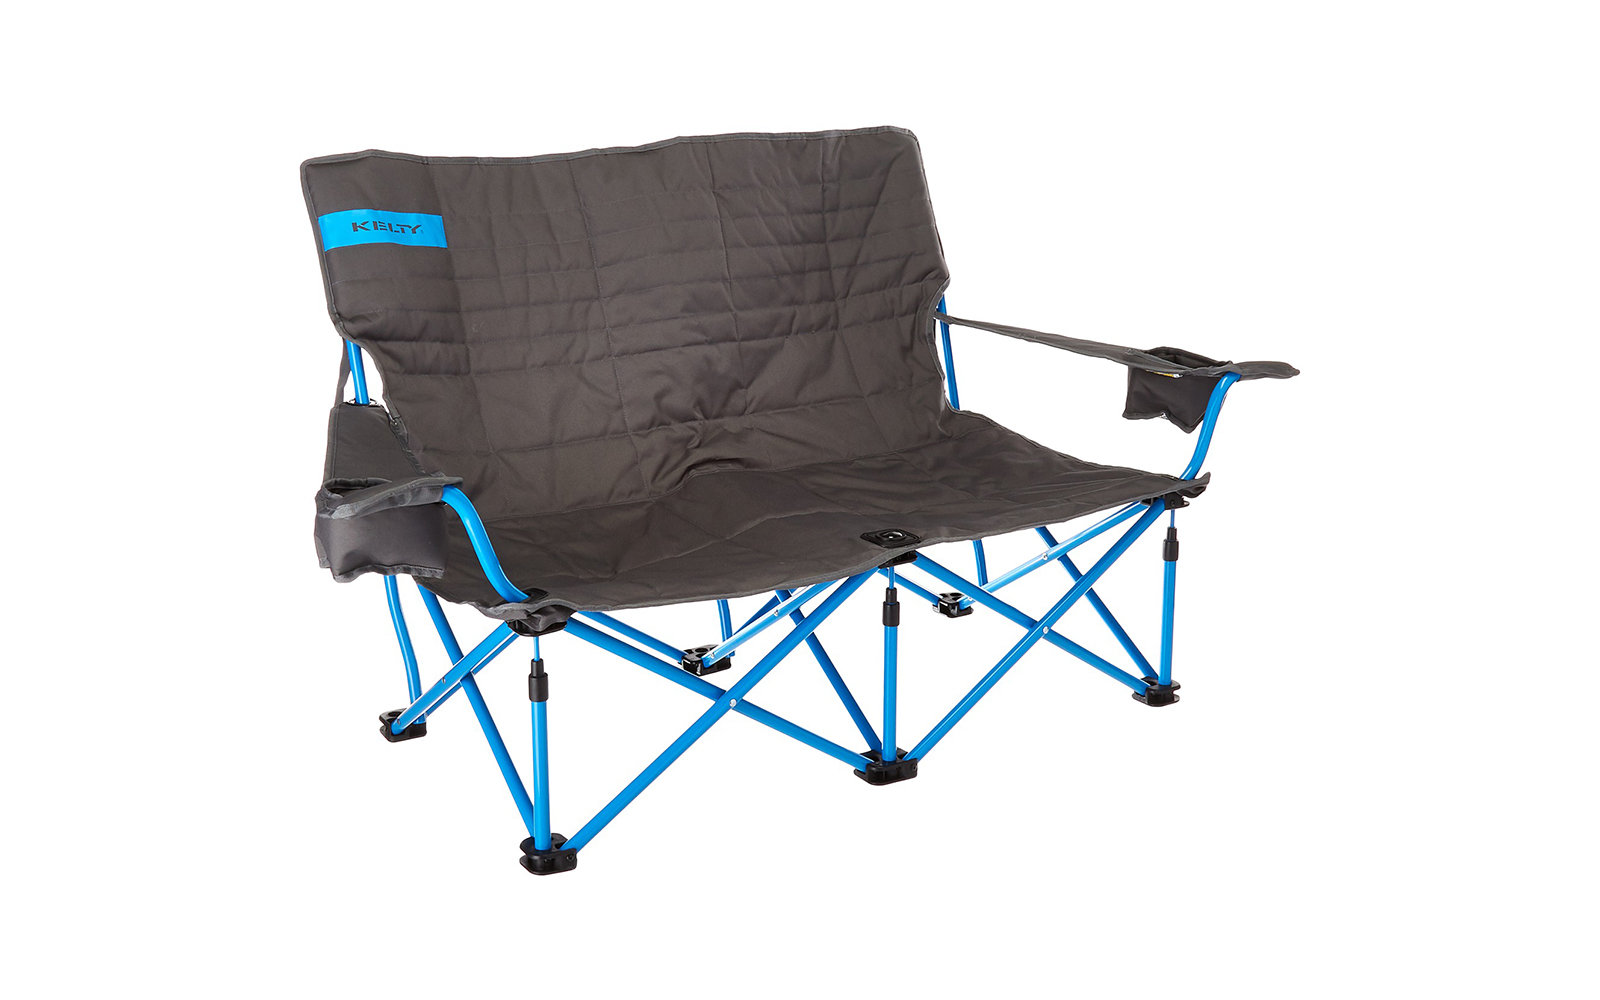 Best Folding Chairs For Camping Sporting Events And More - Collapsible chairs